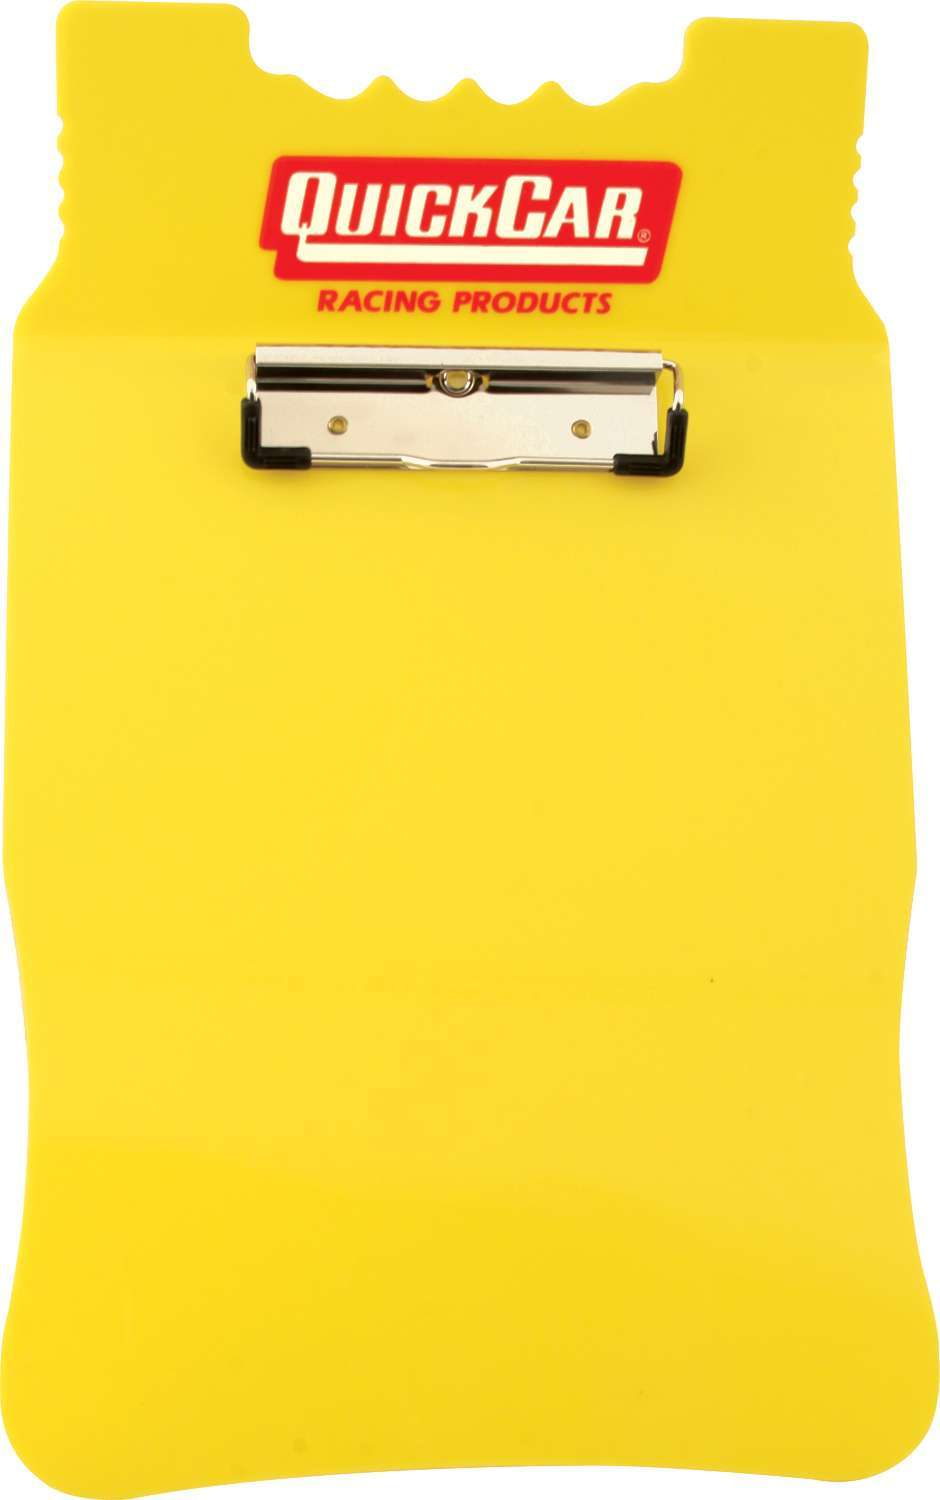 Quickcar Racing Products Acrylic Clipboard Yellow